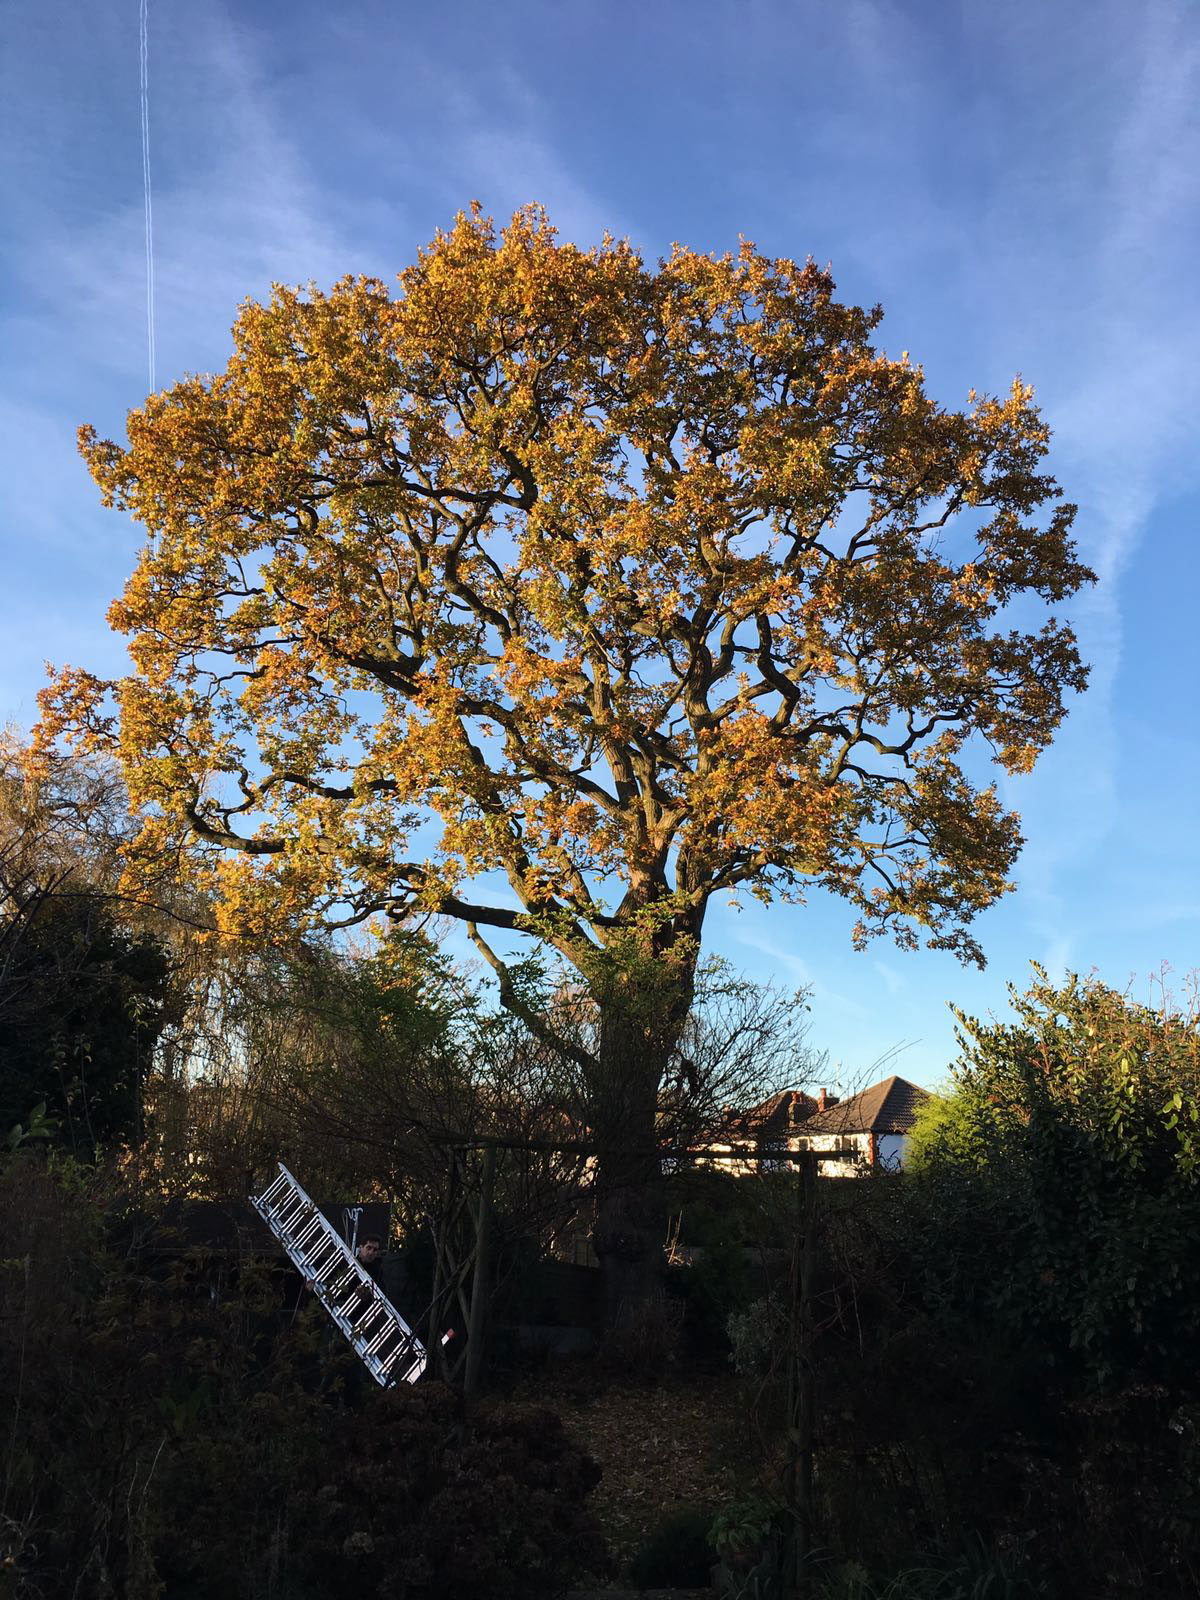 after Crown thinning and deadwood removal on an oak tree in Cheadle Hulme